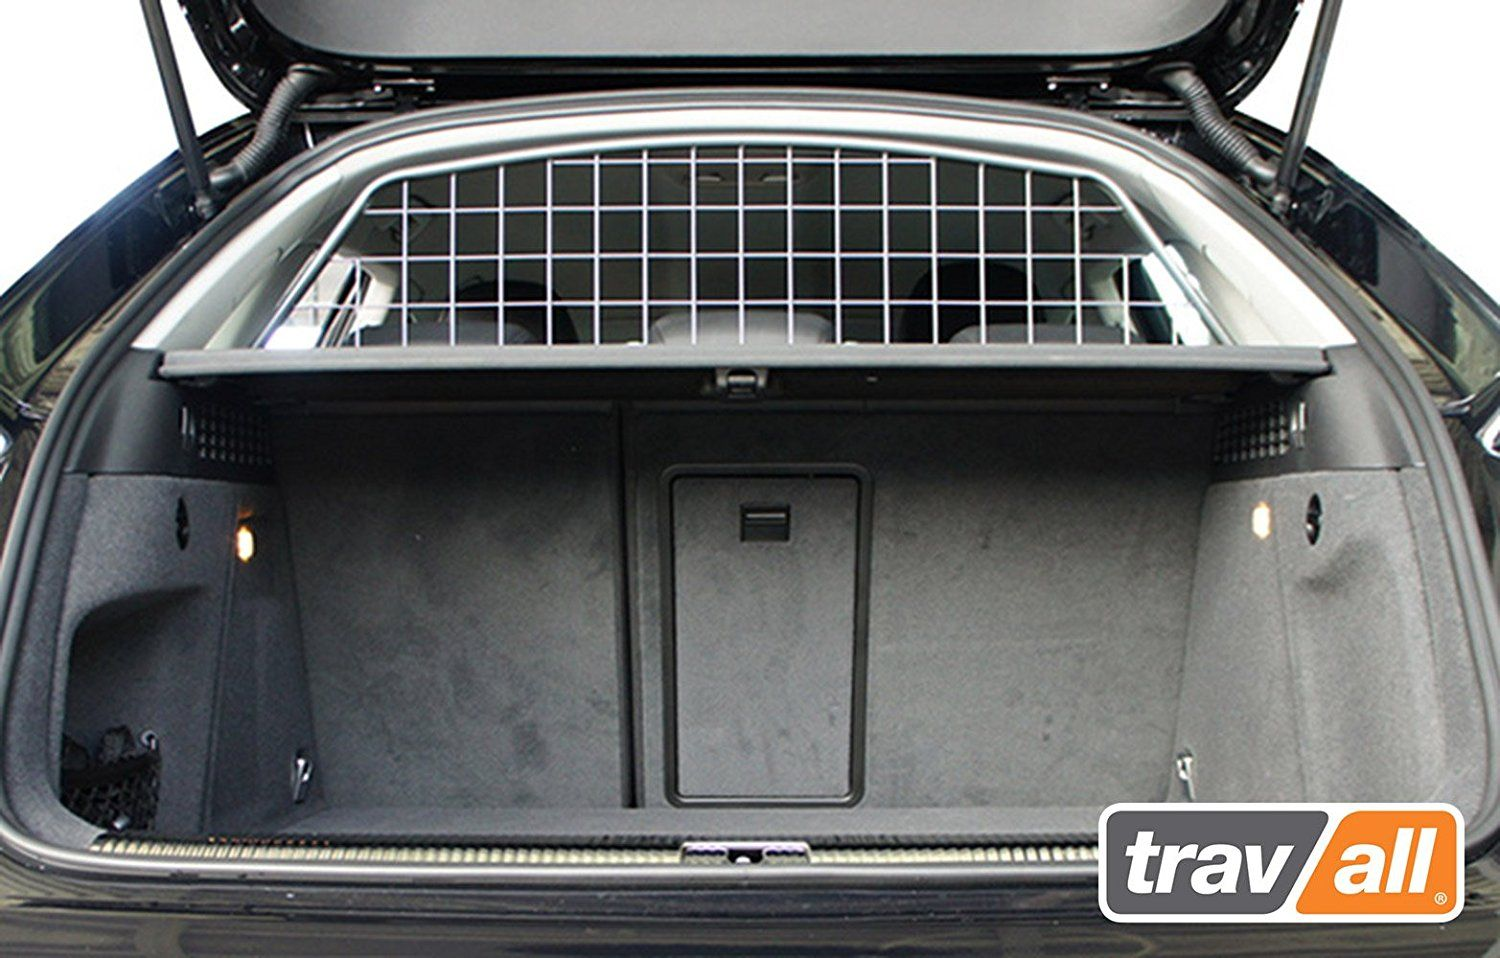 MAZDA CX-3 2015- TRAVALL DOG GUARD